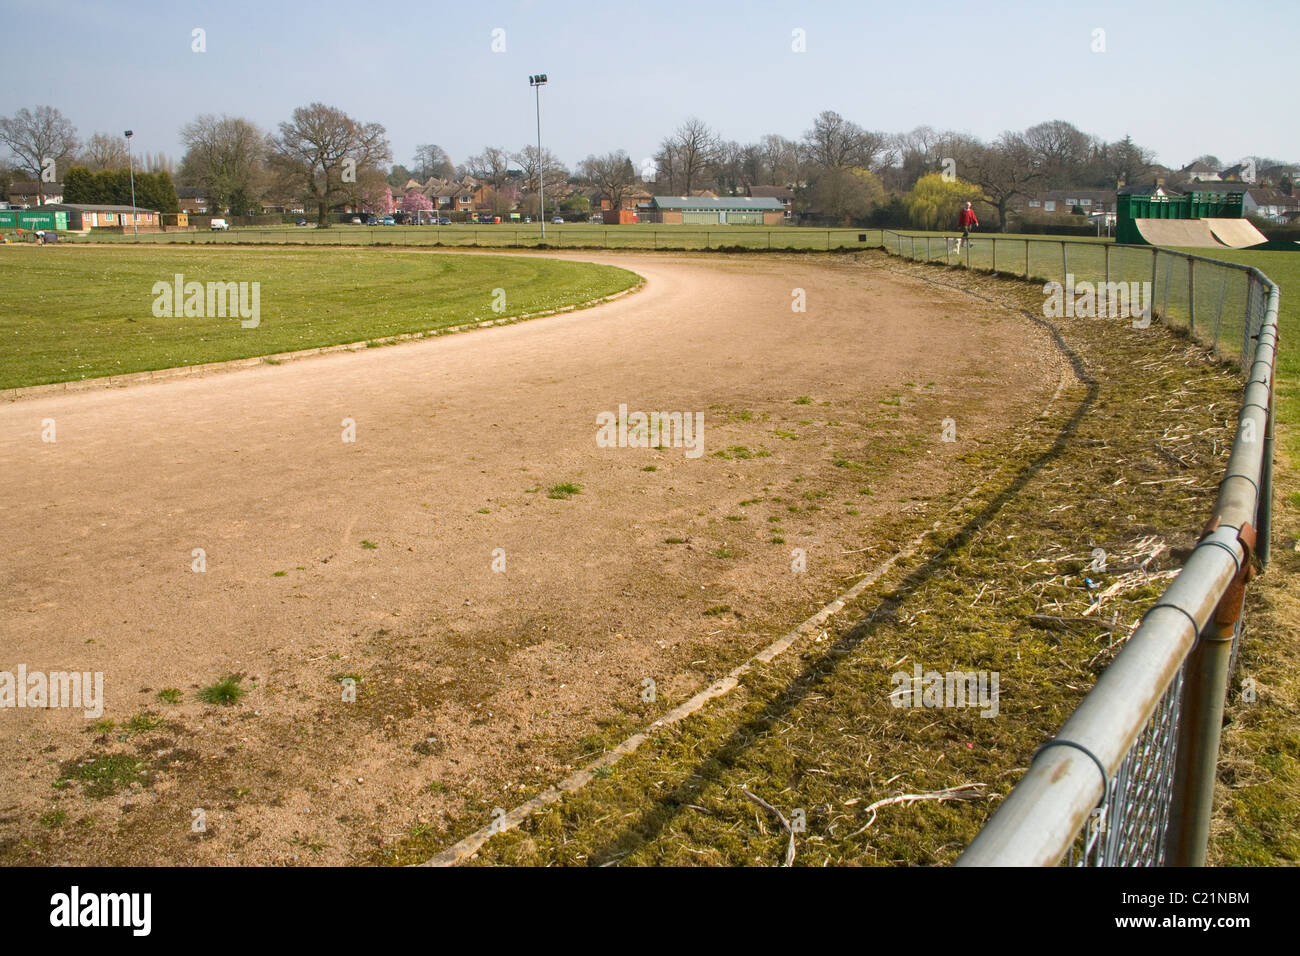 old running track at hurst green in east sussex - Stock Image